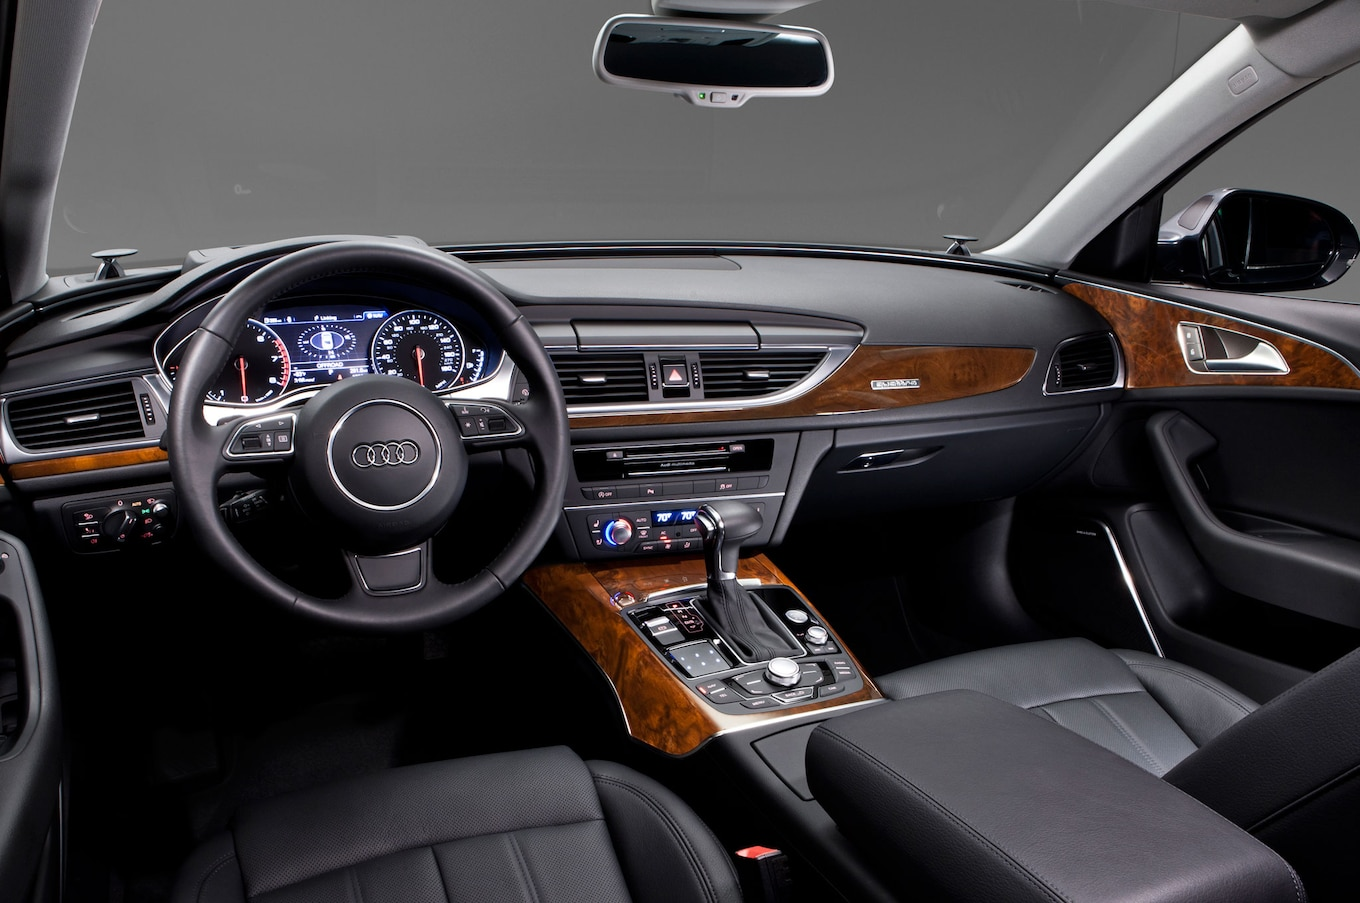 2013 Audi A6 Reviews Research A6 Prices Amp Specs MotorTrend